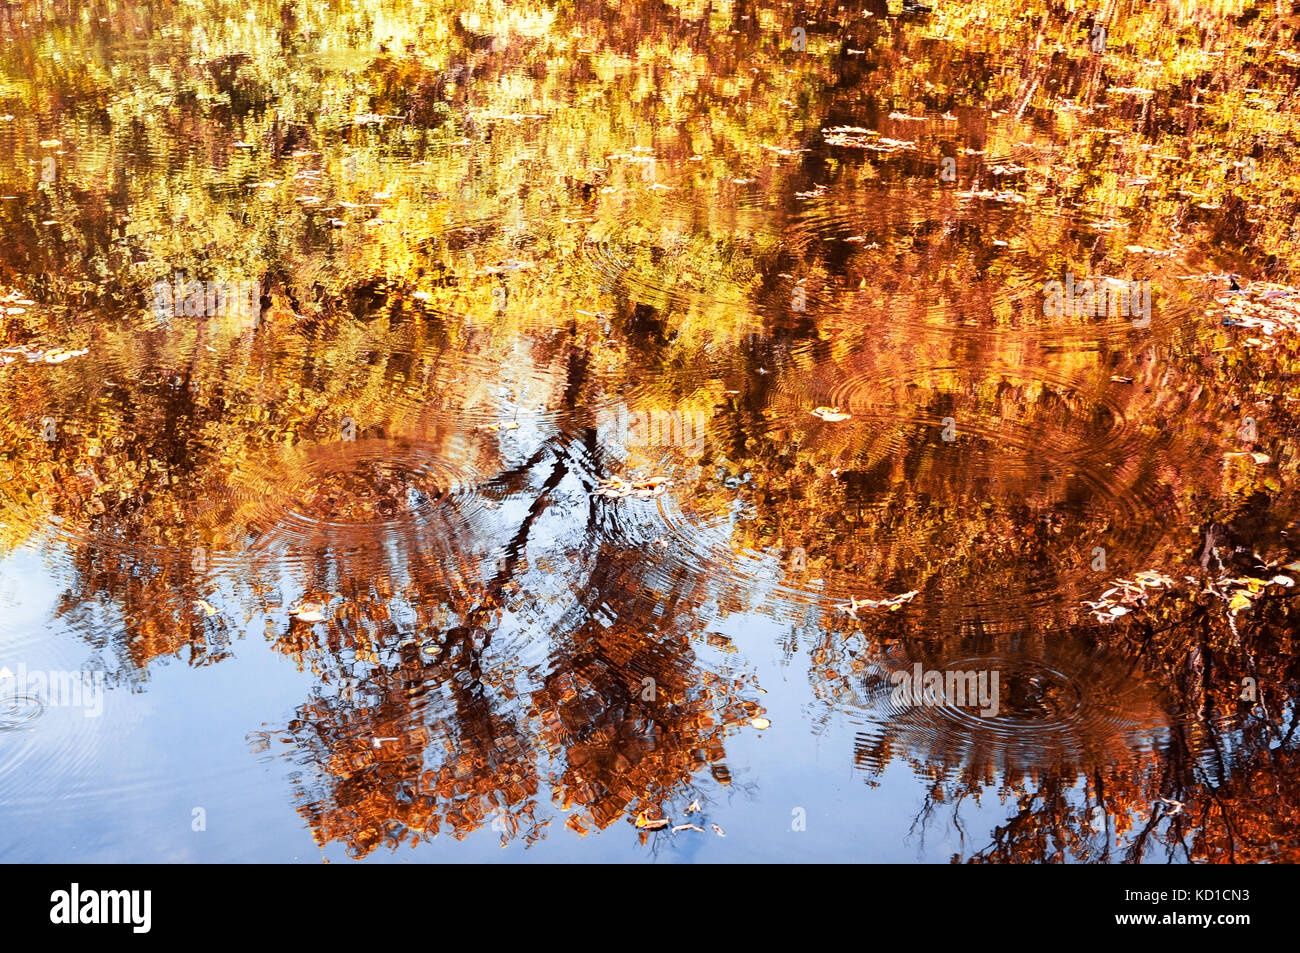 Water with reflections of orange and yellow autumn trees - Stock Image